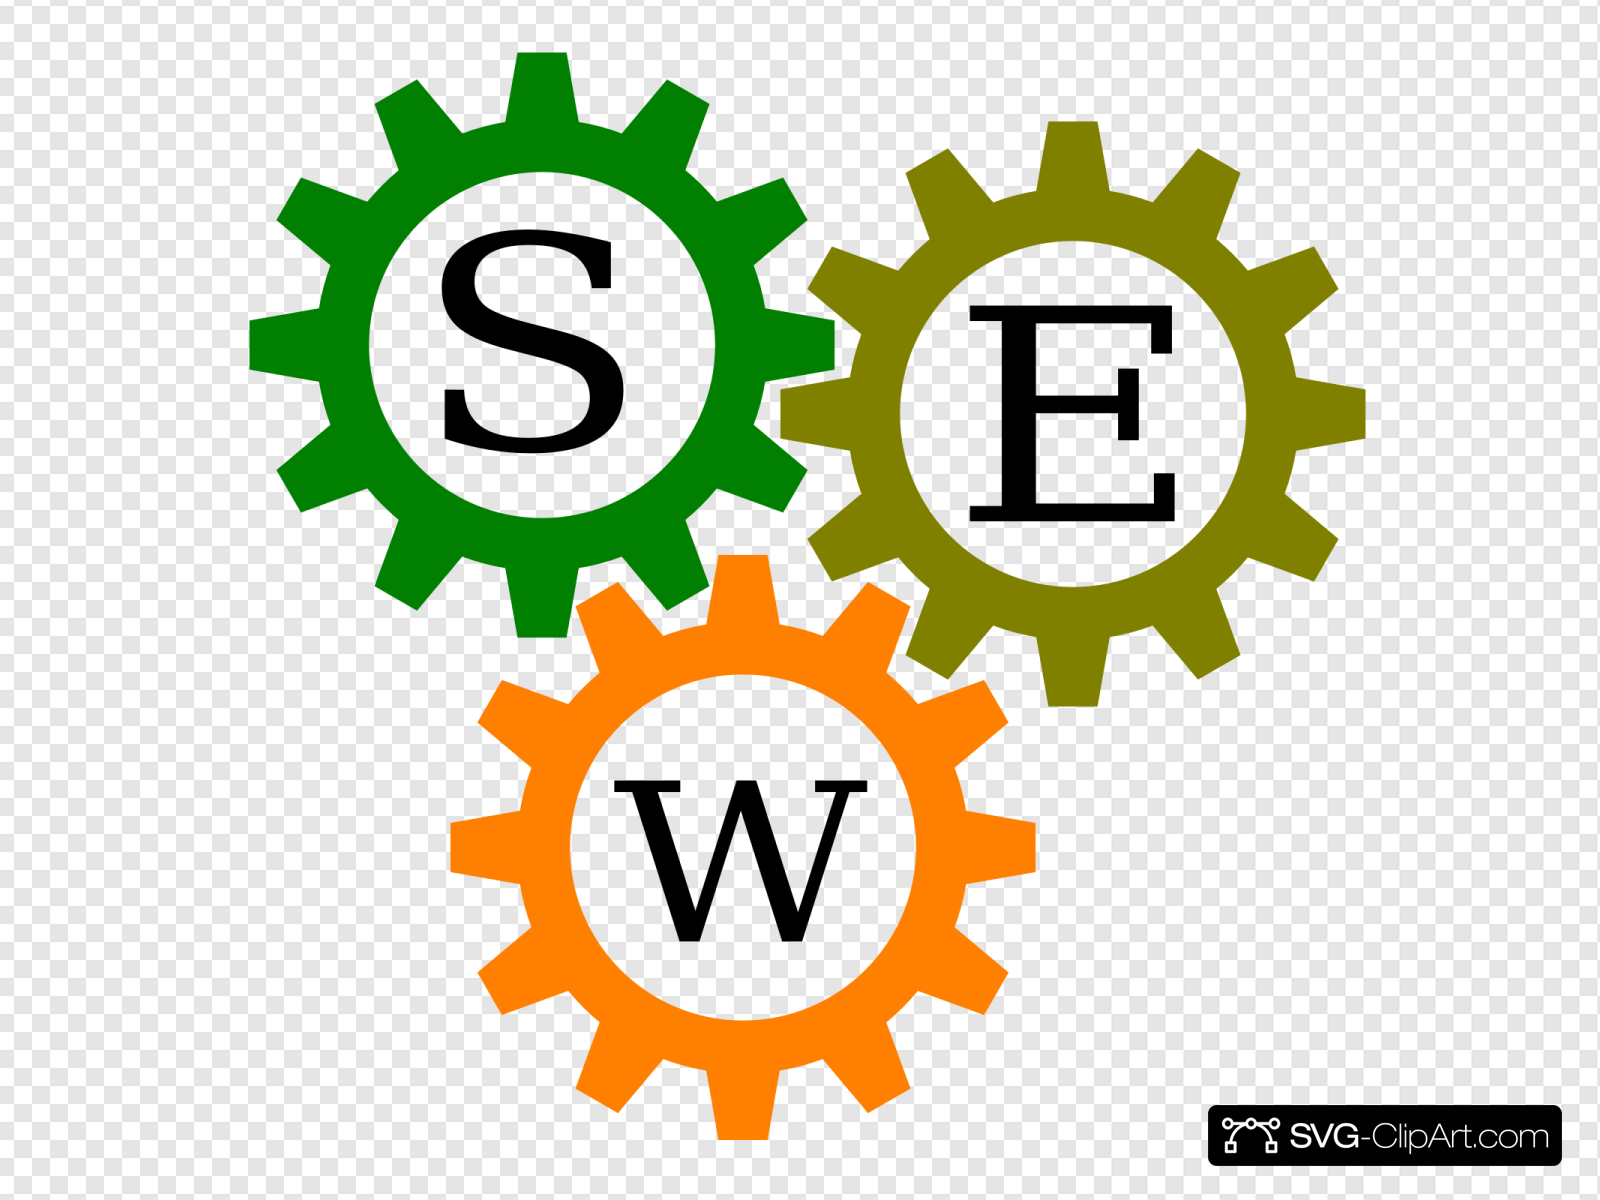 Santosh Engineering Works Clip art, Icon and SVG.